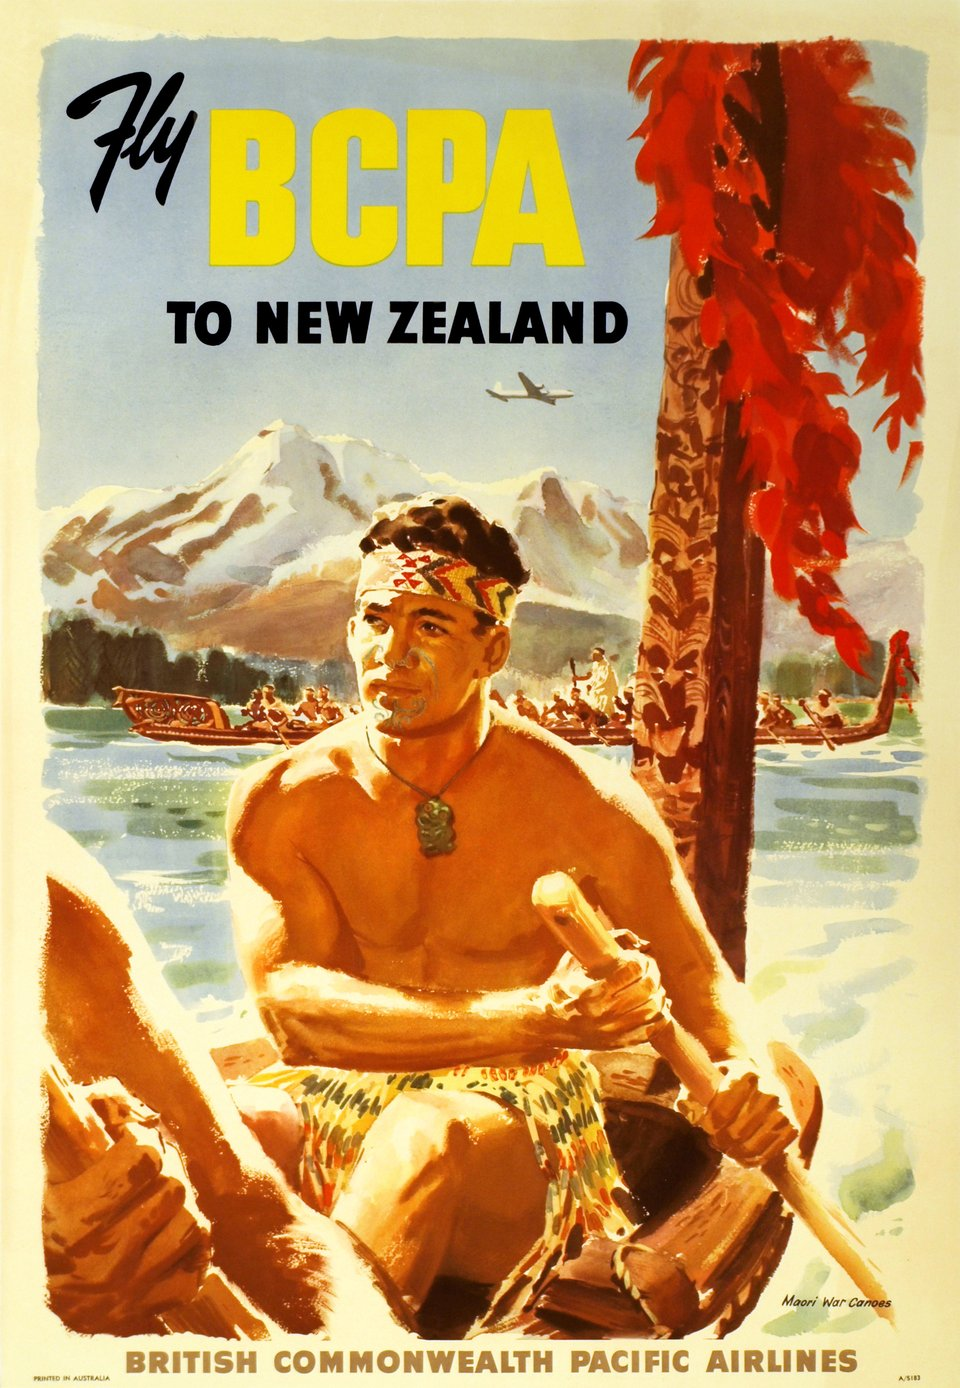 BCPA, Fly BCPA to New Zealand, British Commonwealth Pacific Airlines – Vintage poster – ANONYME – 1951